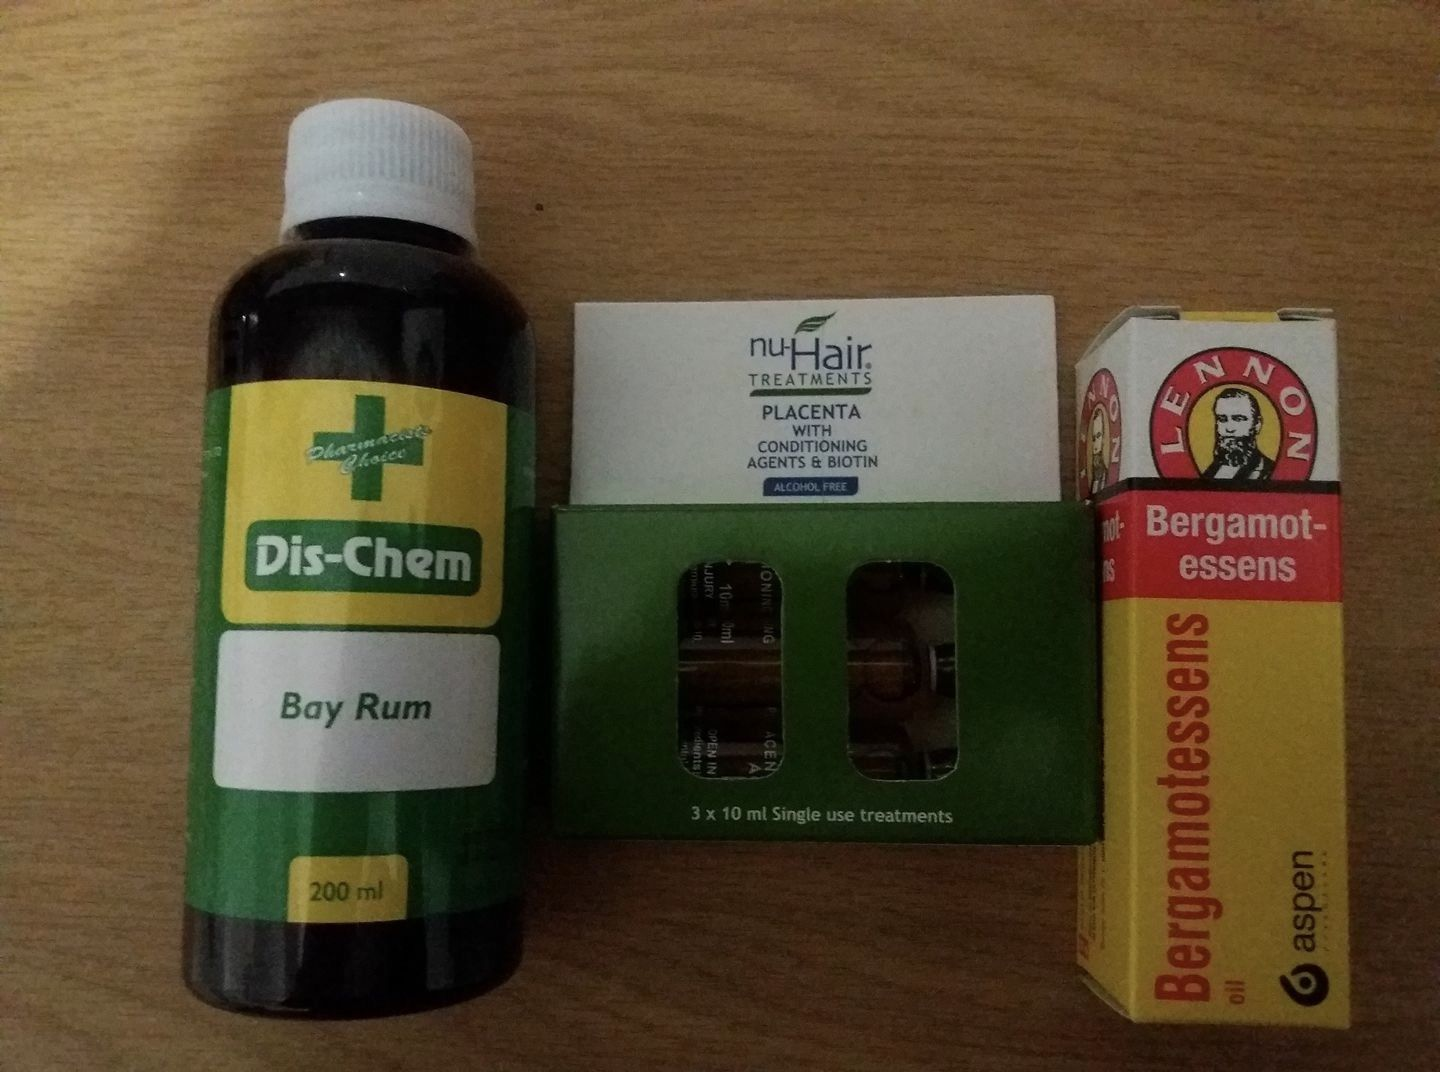 Pin on Cures & Treatments